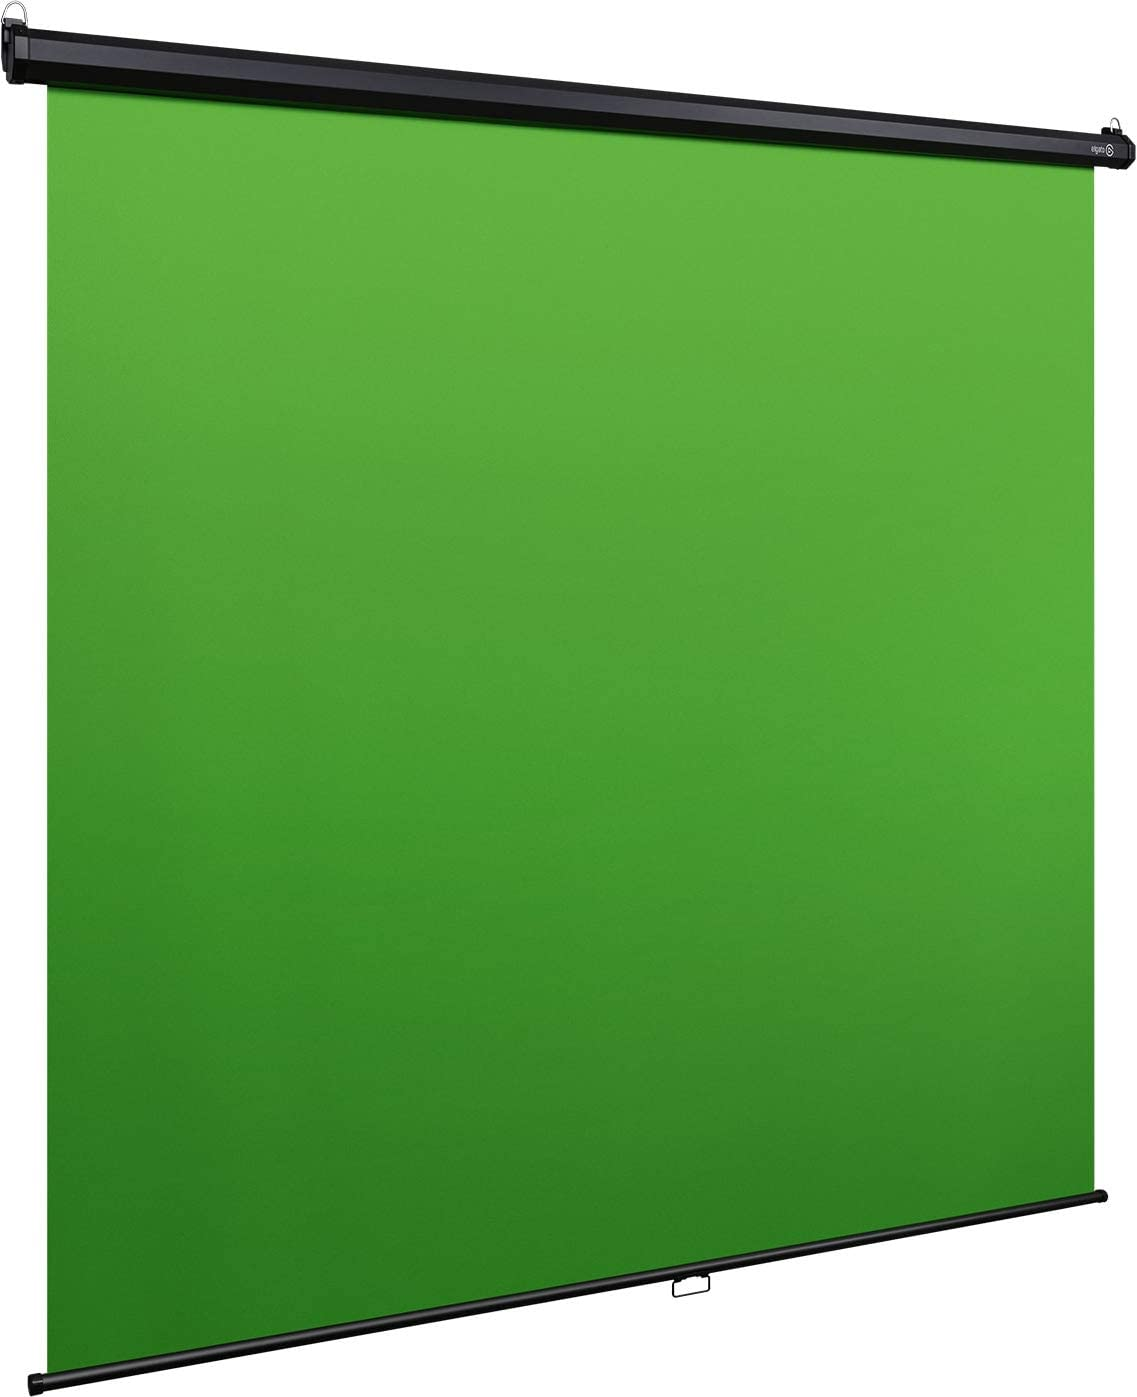 Corsair Elgato Green Screen MT - Mountable Chroma Key Panel for background removal, wrinkle-resistant chroma-green fabric